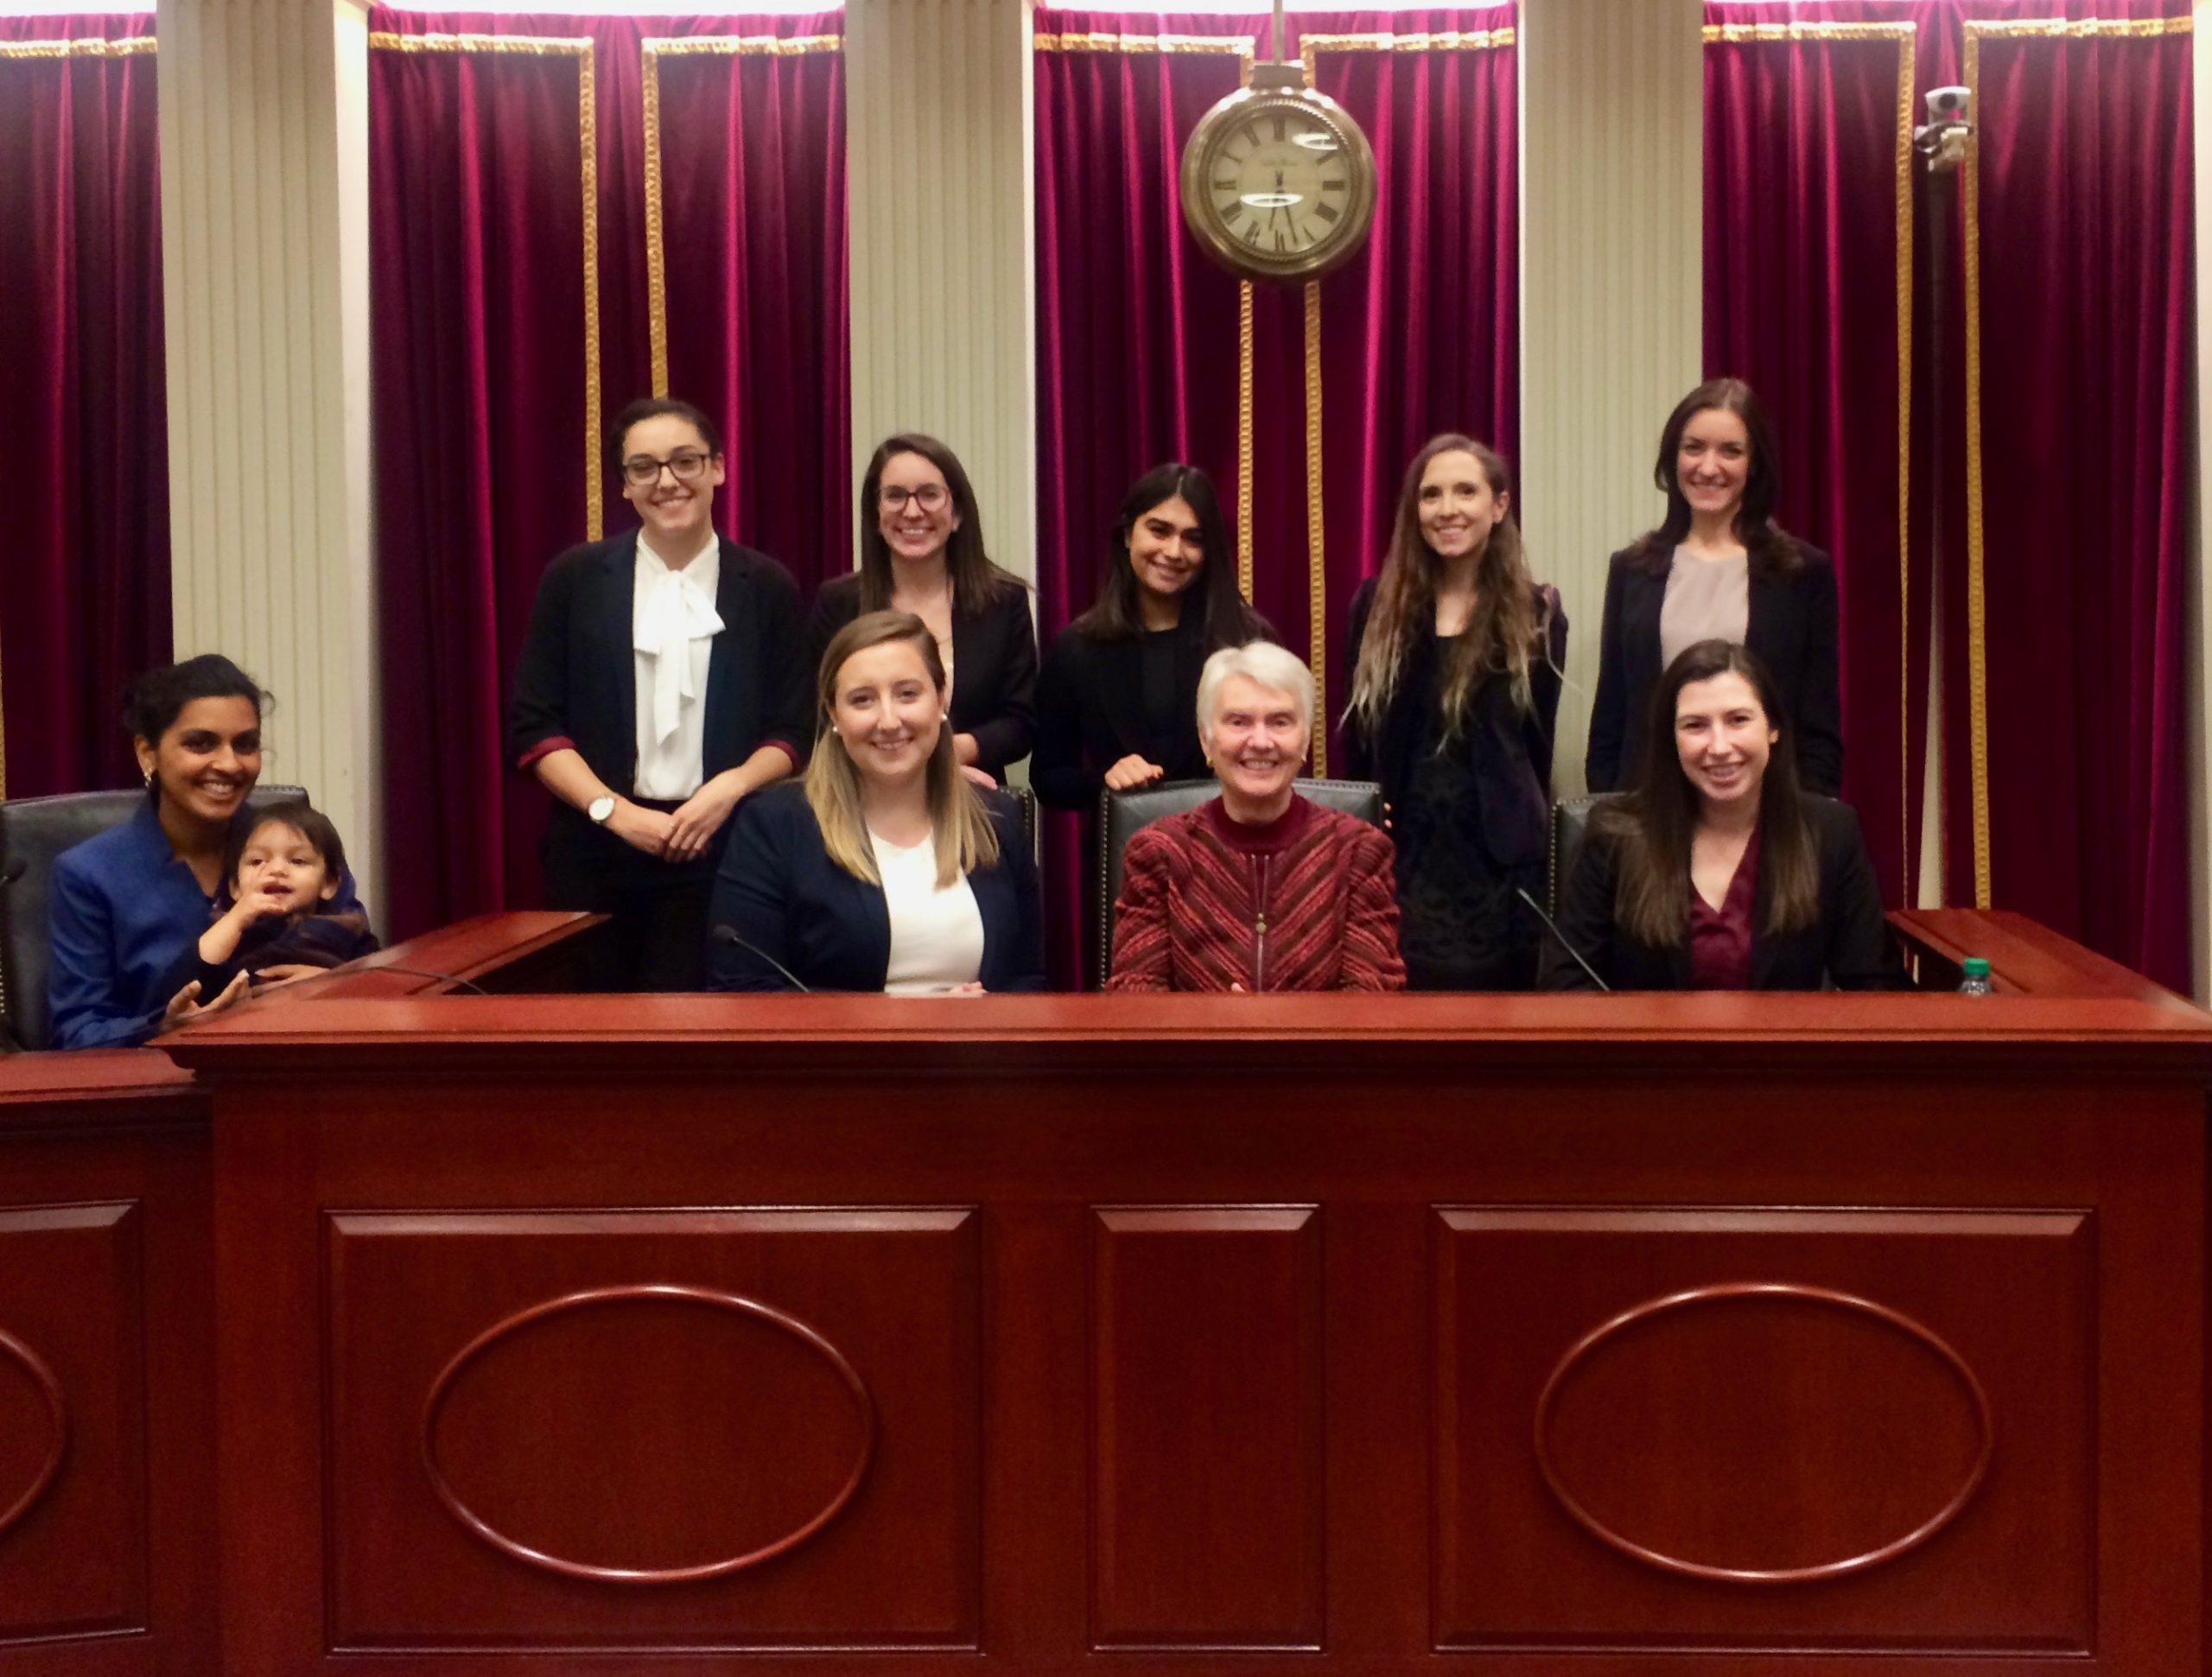 Fall semester Student Advocates Karuna Srivastav, Kayla Svihovec, Clara Mora, Neilab Rahimzada, Alicia Ceccanese, Amanda Strayer, Hannah Kaufman, and Makenna Osborn with Professor Ross in the Supreme Court Institute Moot Courtroom after wrapping up their final oral arguments.